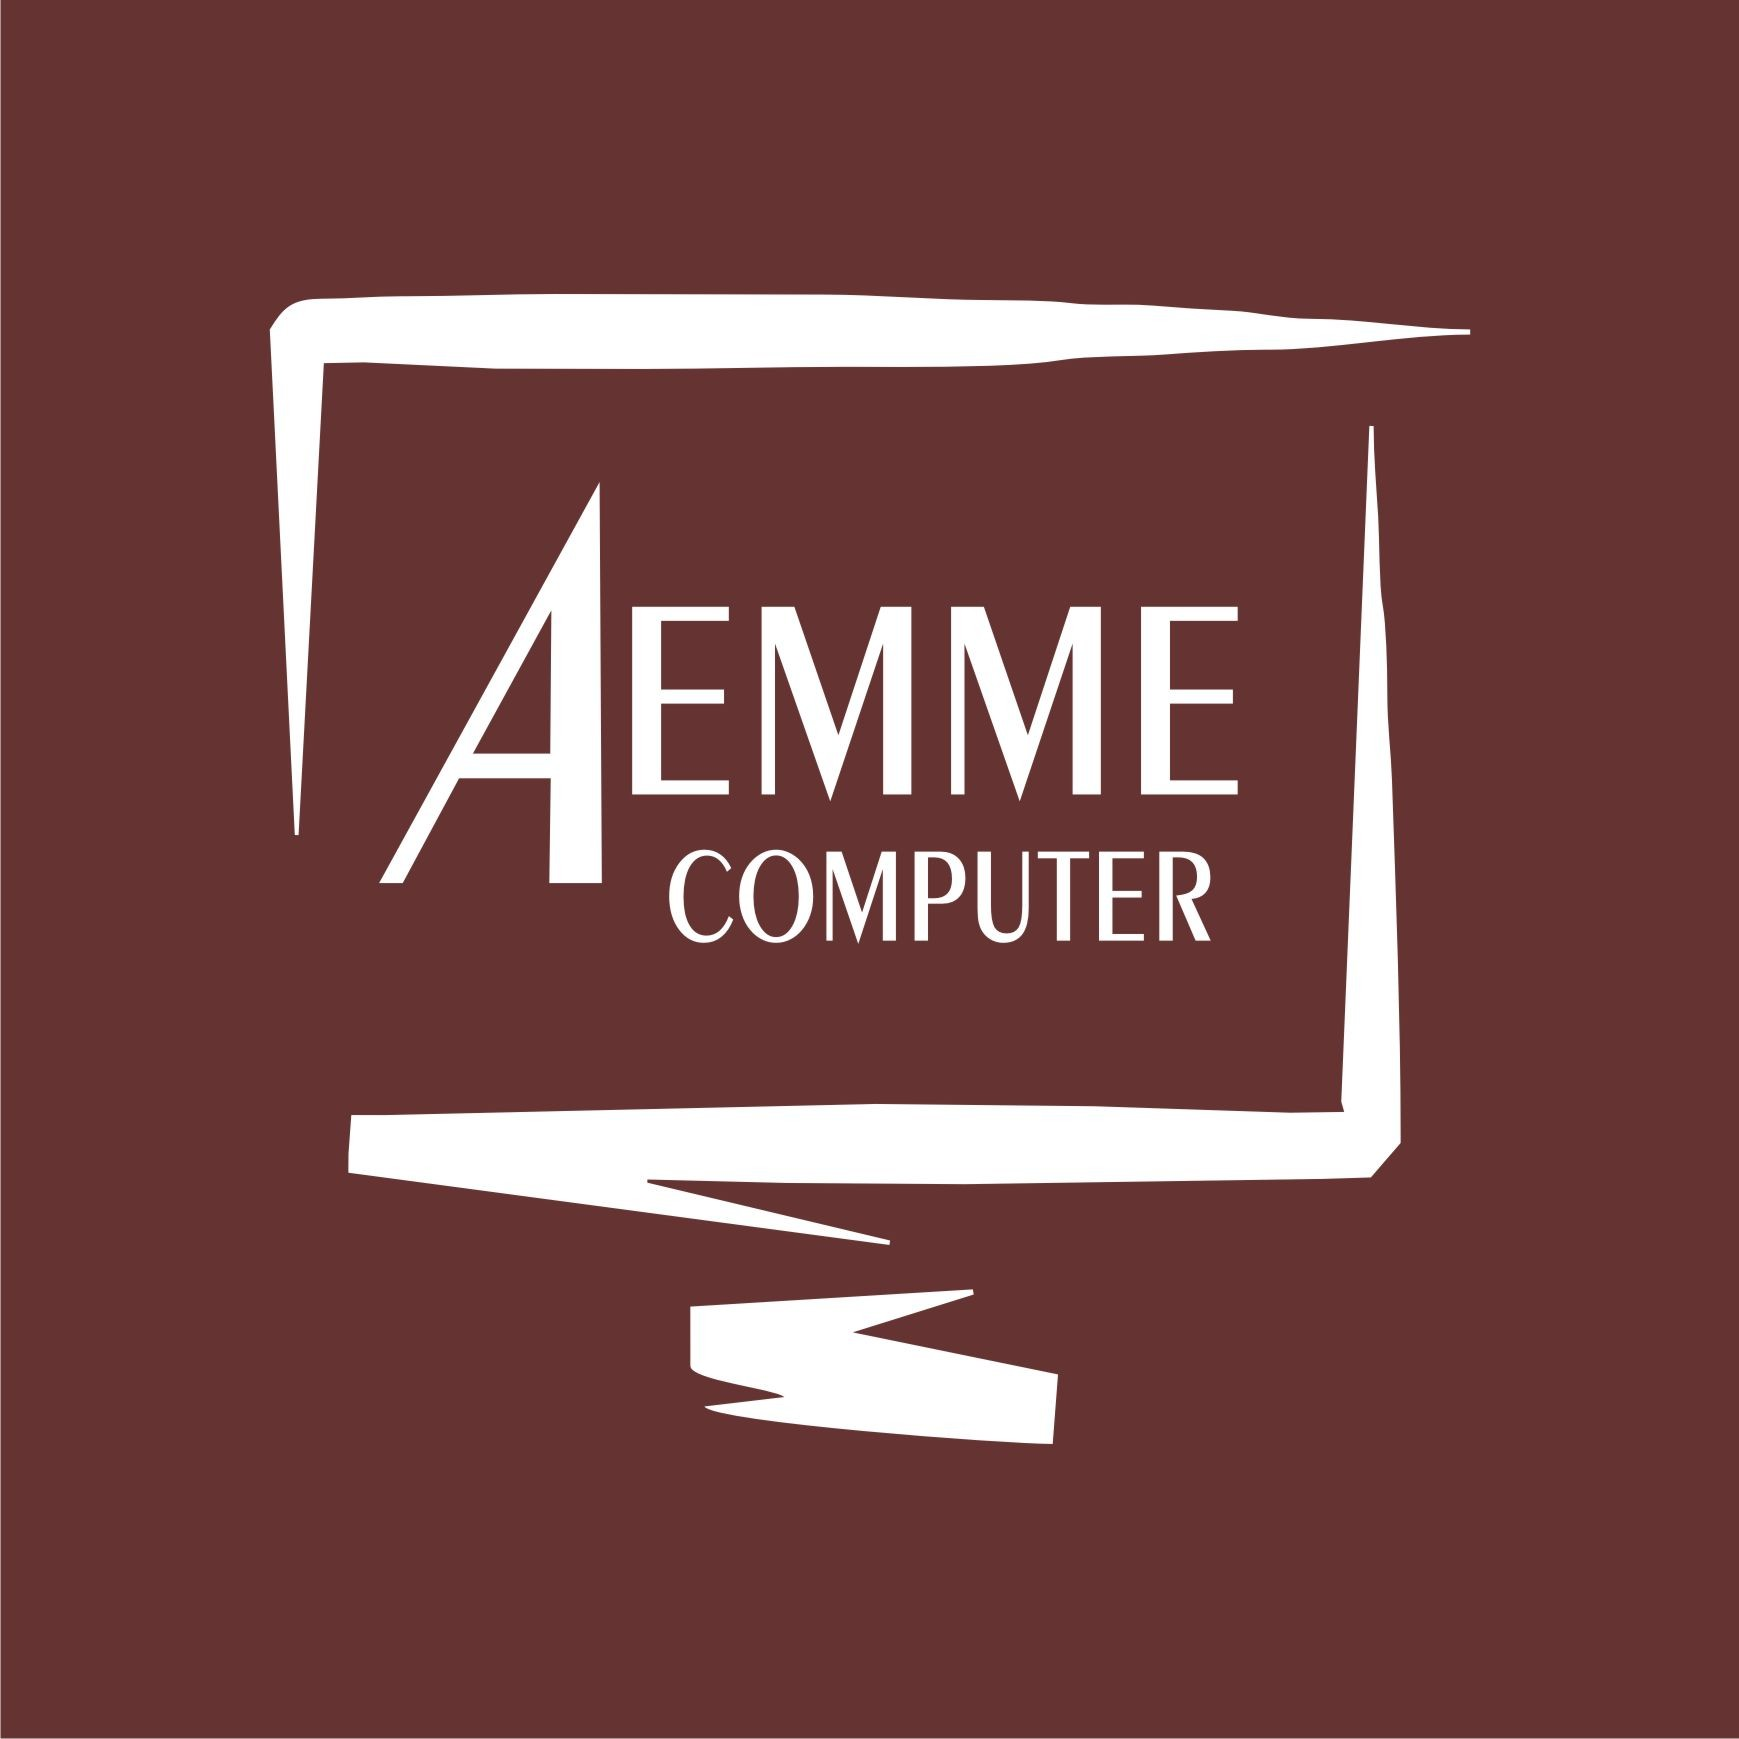 A San Gottardo! Da Aemme Computer! 19,90 € per un check-up completo del tuo pc/notebook/mac. Il tuo Pc come nuovo!